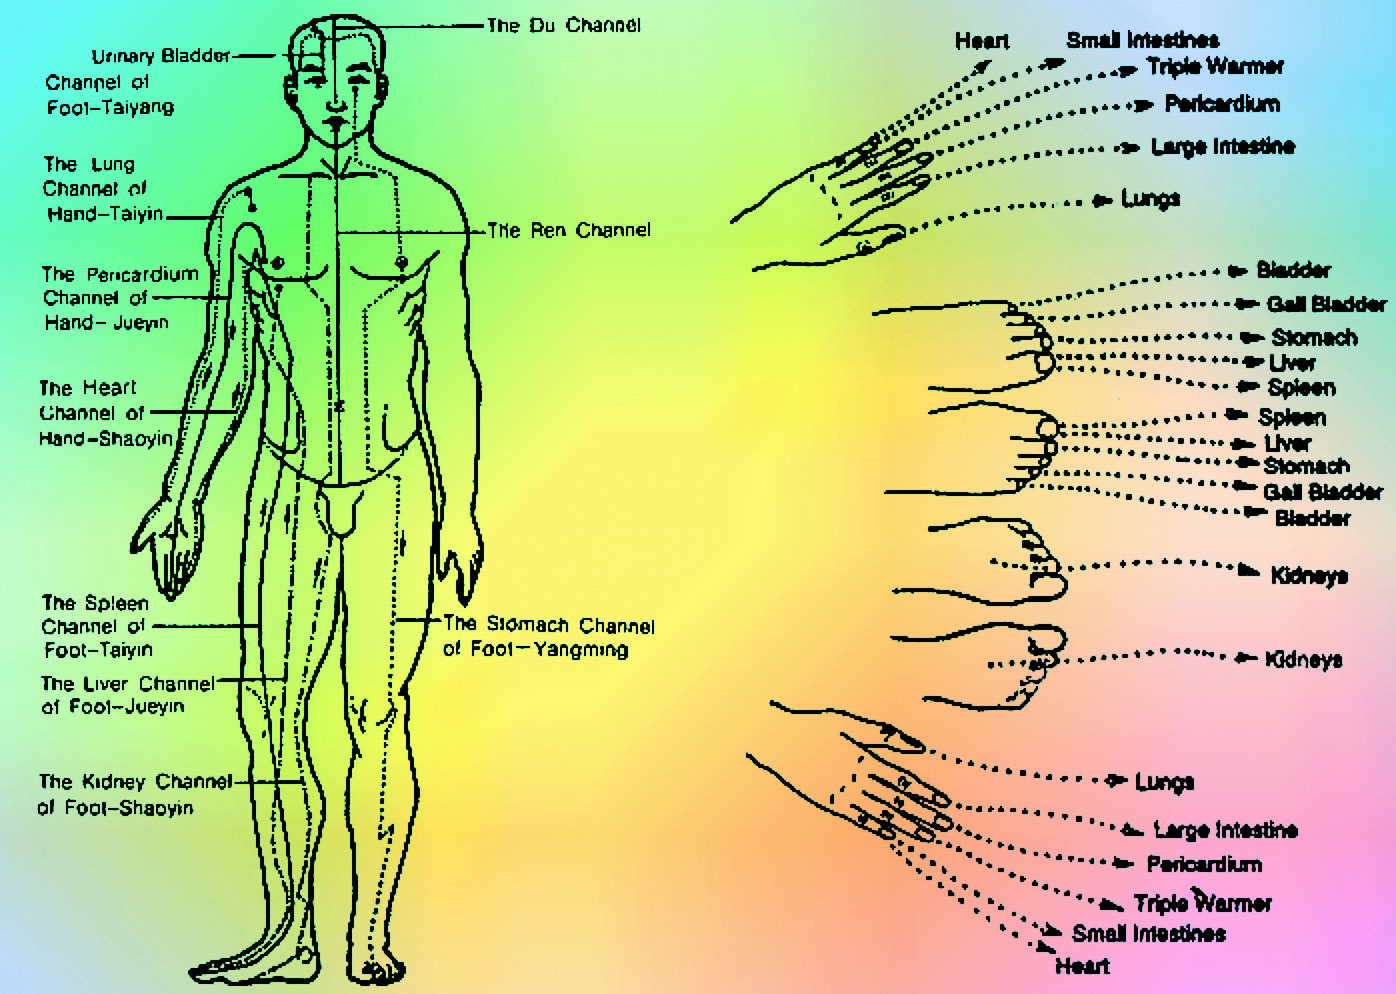 Shiatsu uses the Chinese meridian system